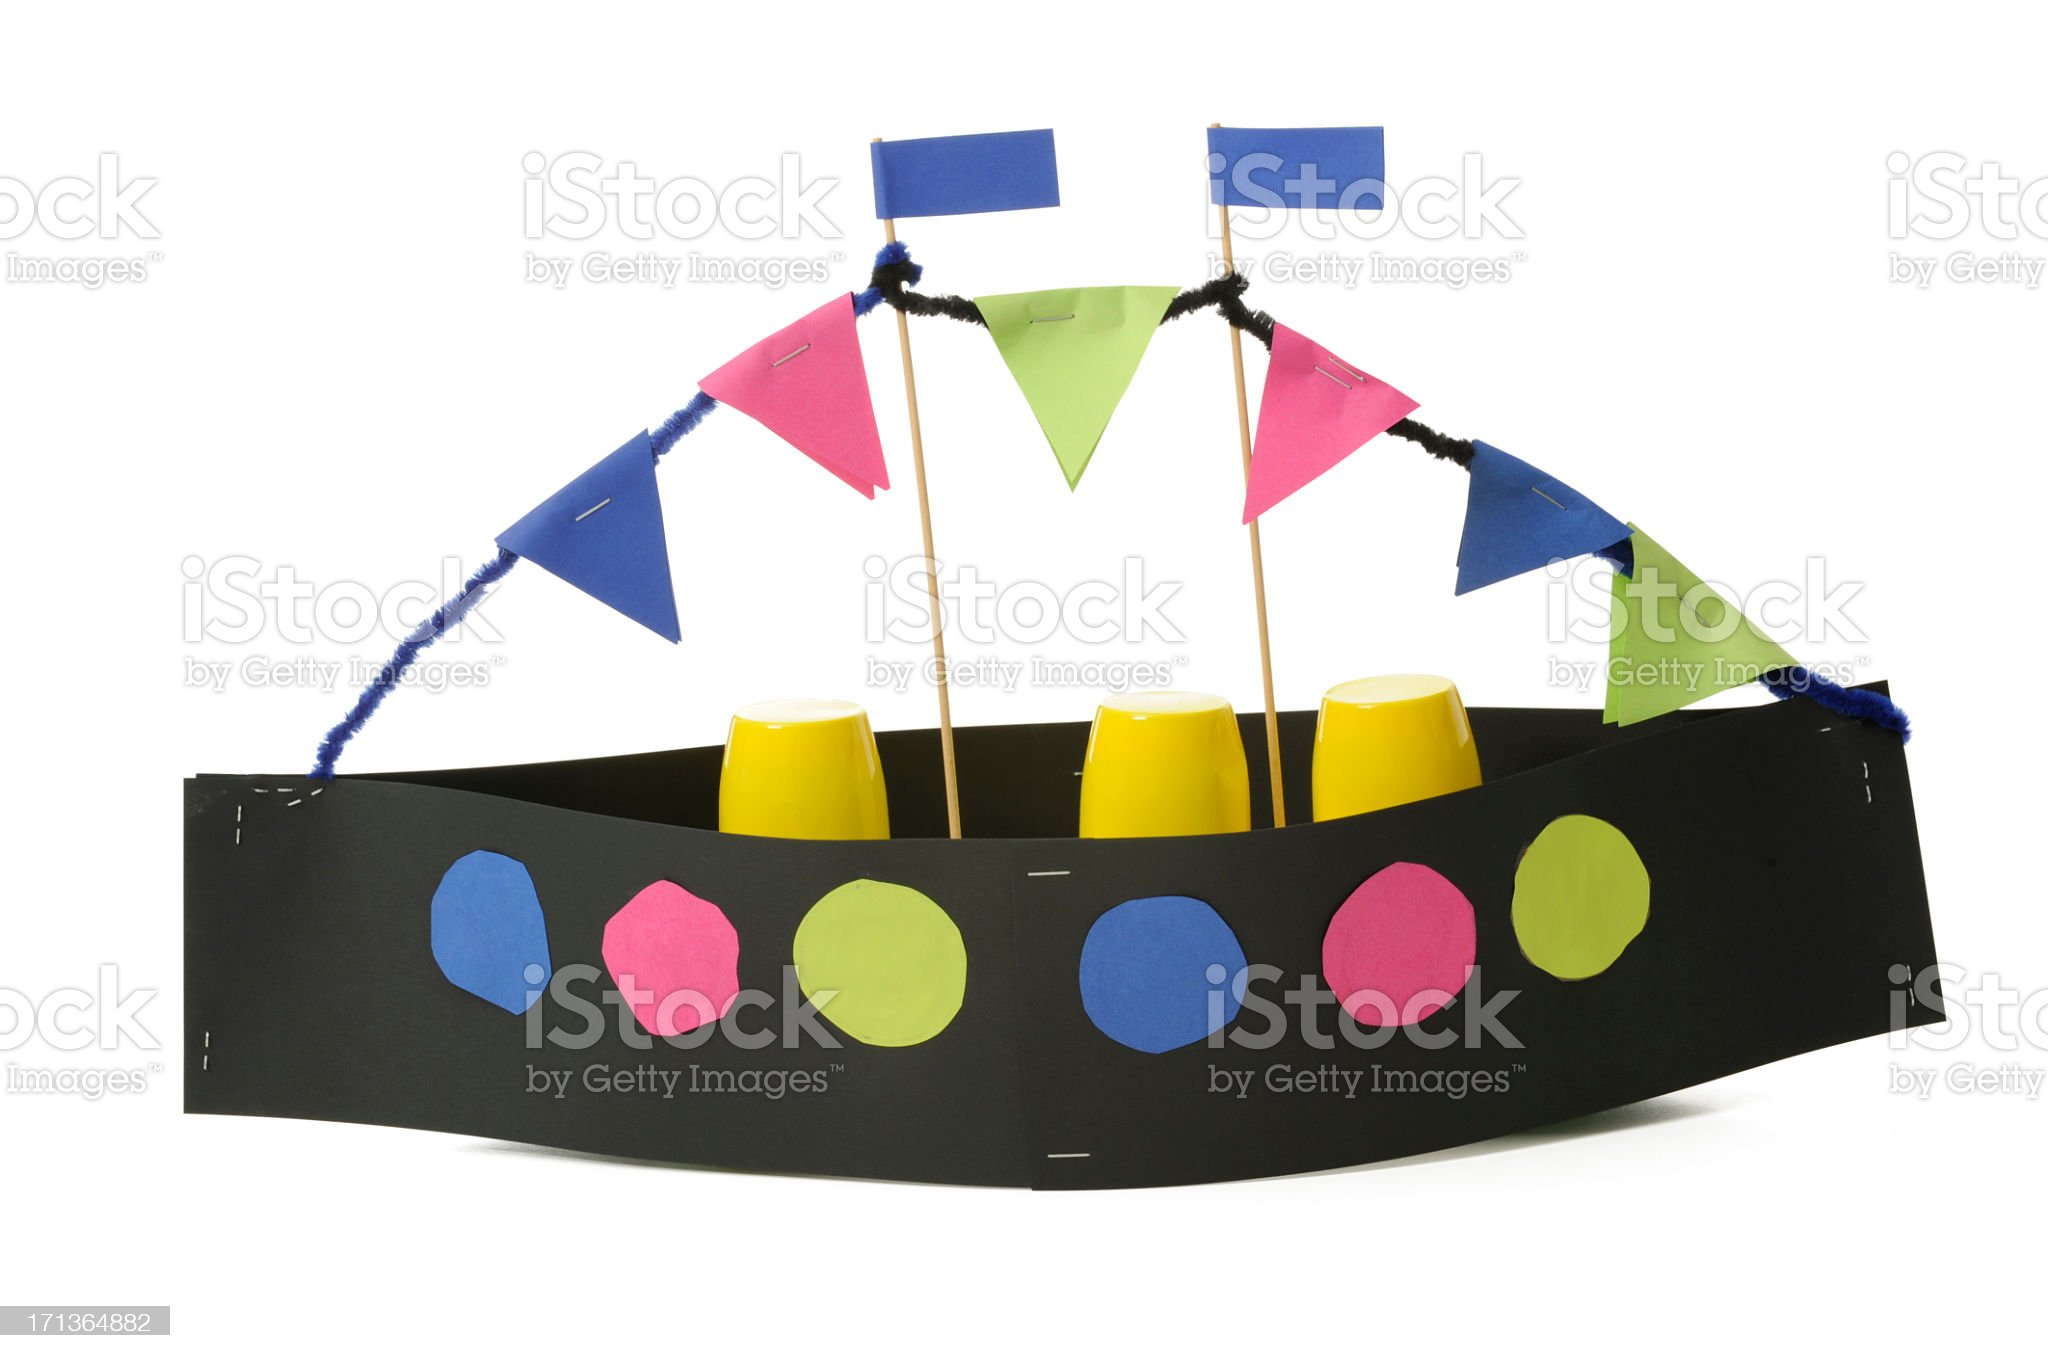 Stoomboot Sinterklaas royalty-free stock photo